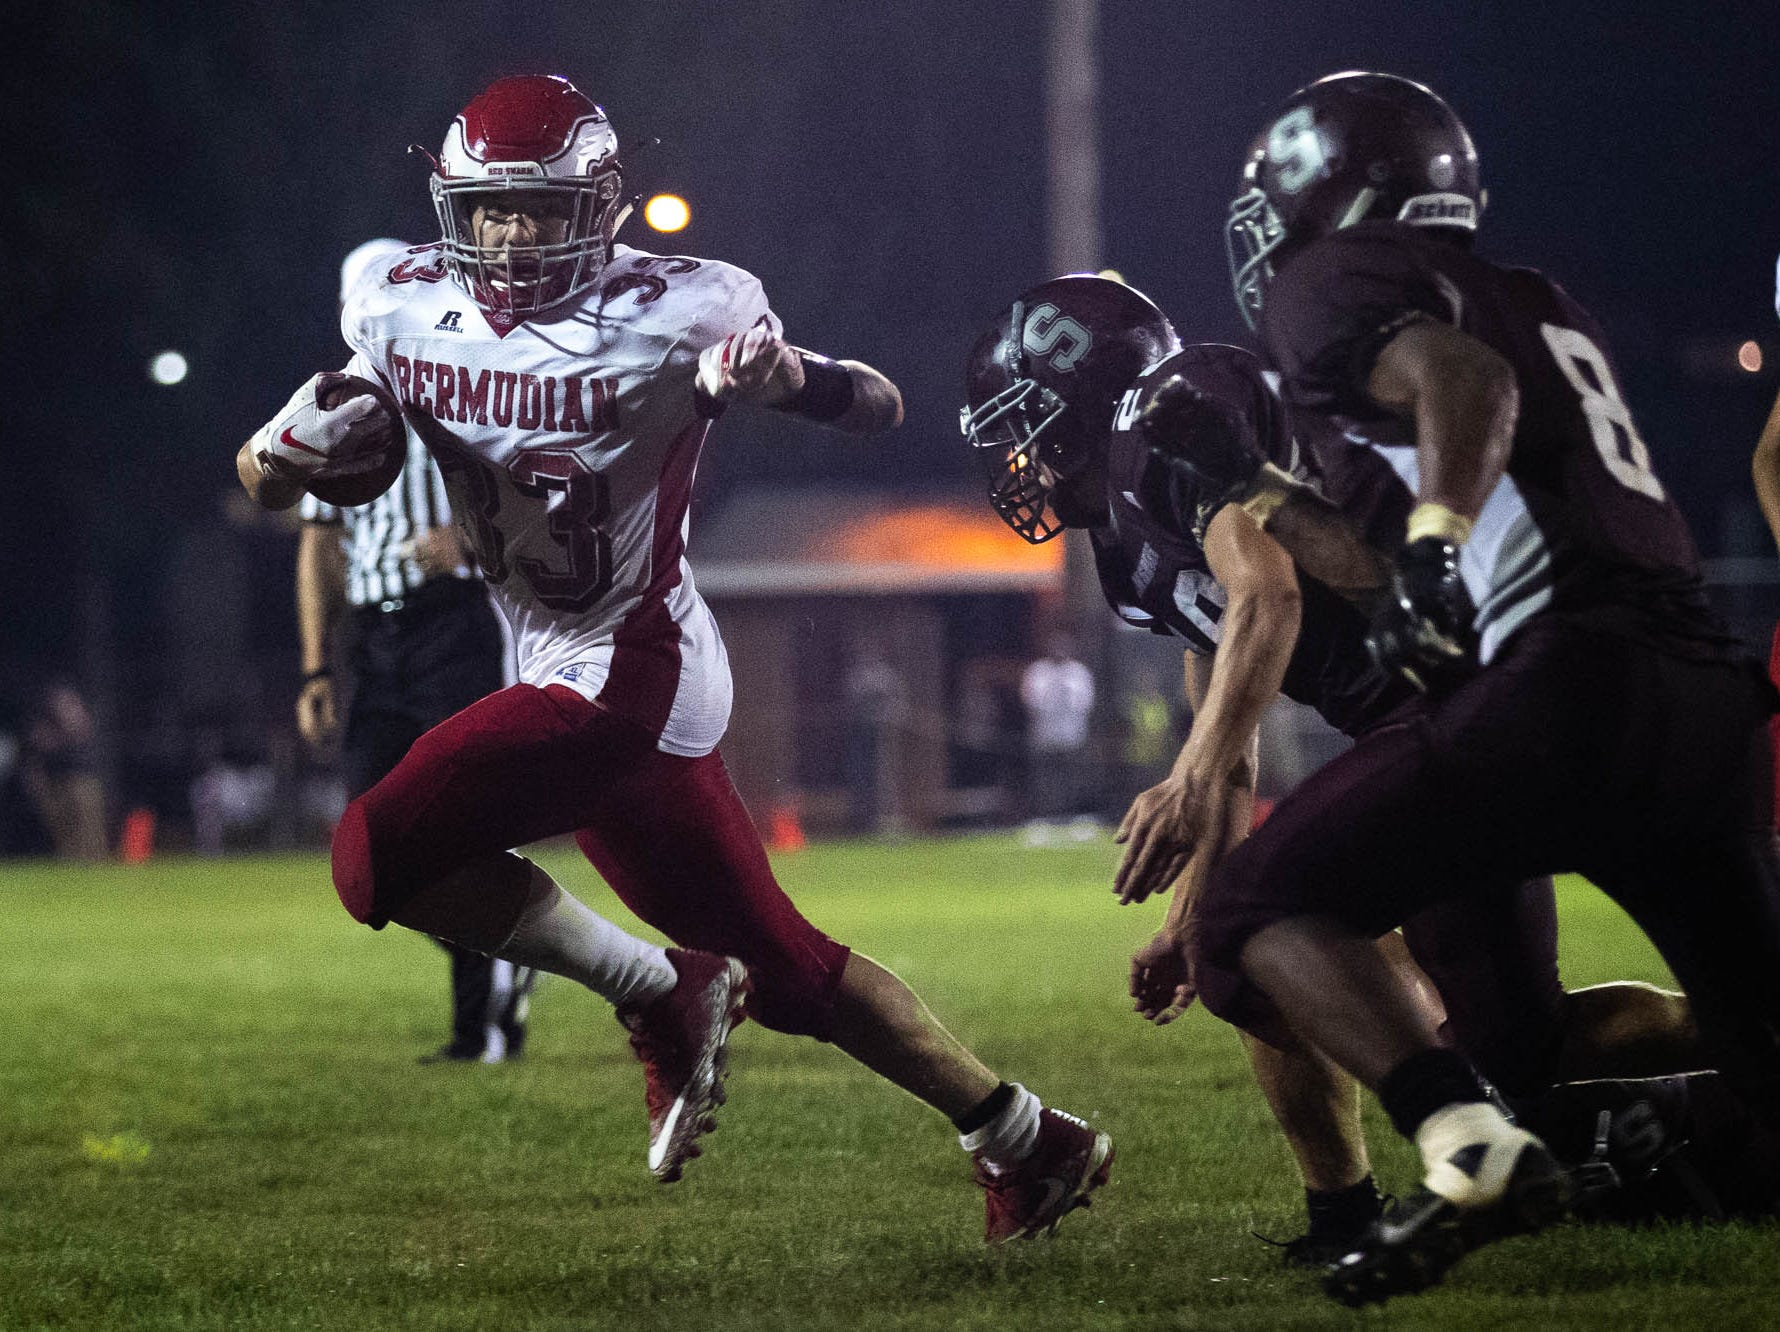 Bermudian Springs' Trace Grim (33) runs the ball during a football game between Shippensburg and Bermudian Springs, Friday, Sept. 7, 2018, at Shippensburg High School. The Shippensburg Greyhounds defeated the Bermudian Springs Eagles 31-17.